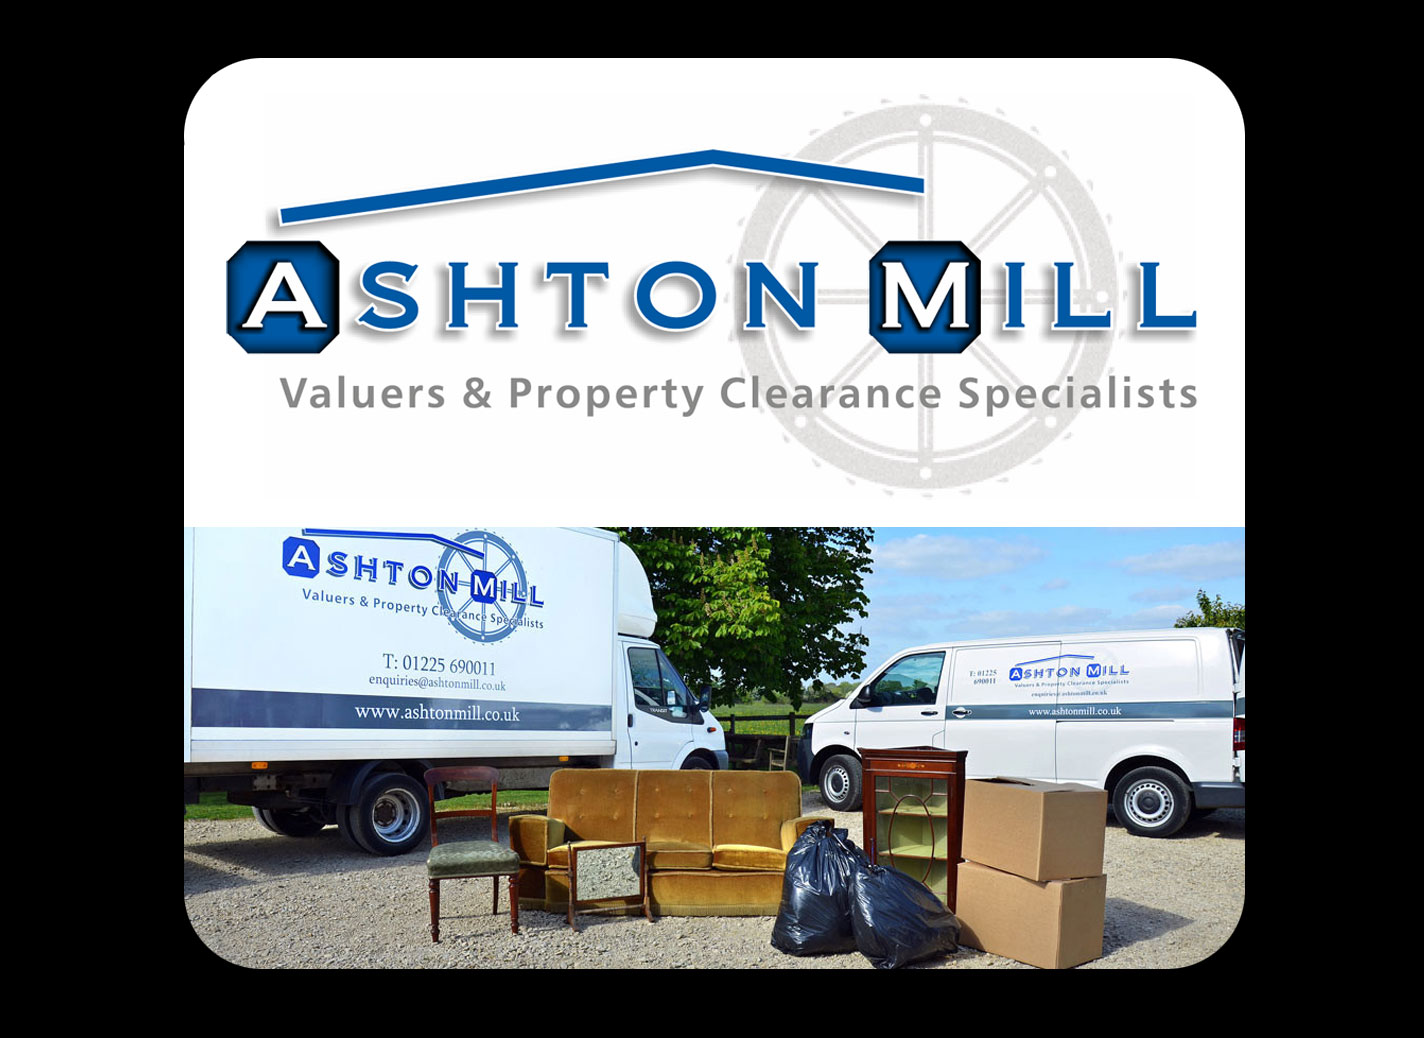 Identity - Logo for Ashton Mill Valuers and Property Clearance Specialists, Melksham - Design, Specifications & Artworks.